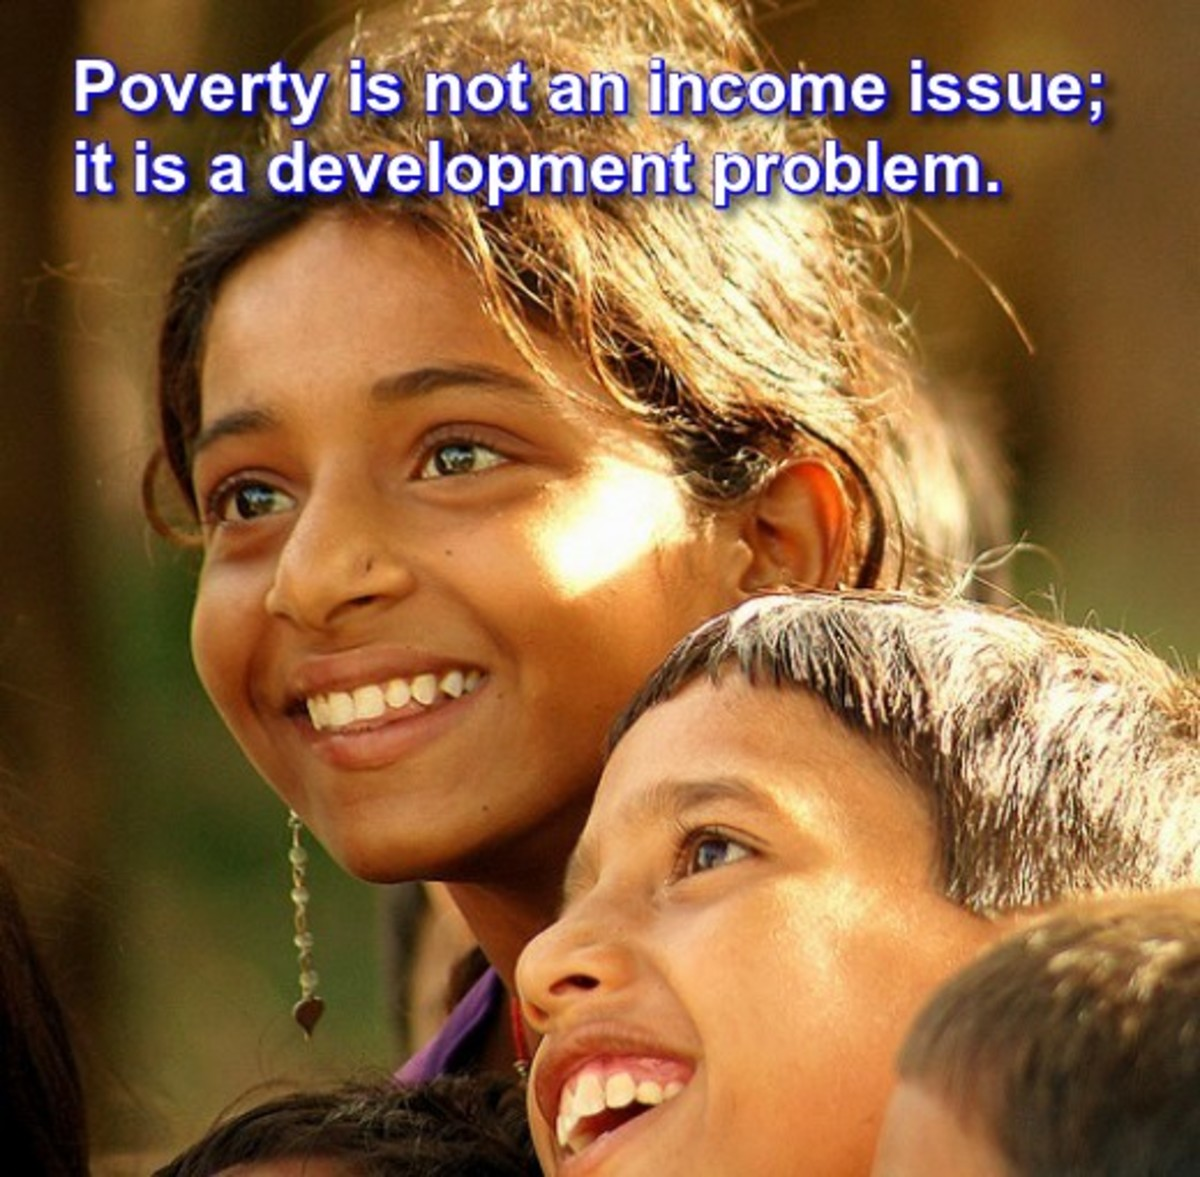 Poverty is a development problem, not an income issue.